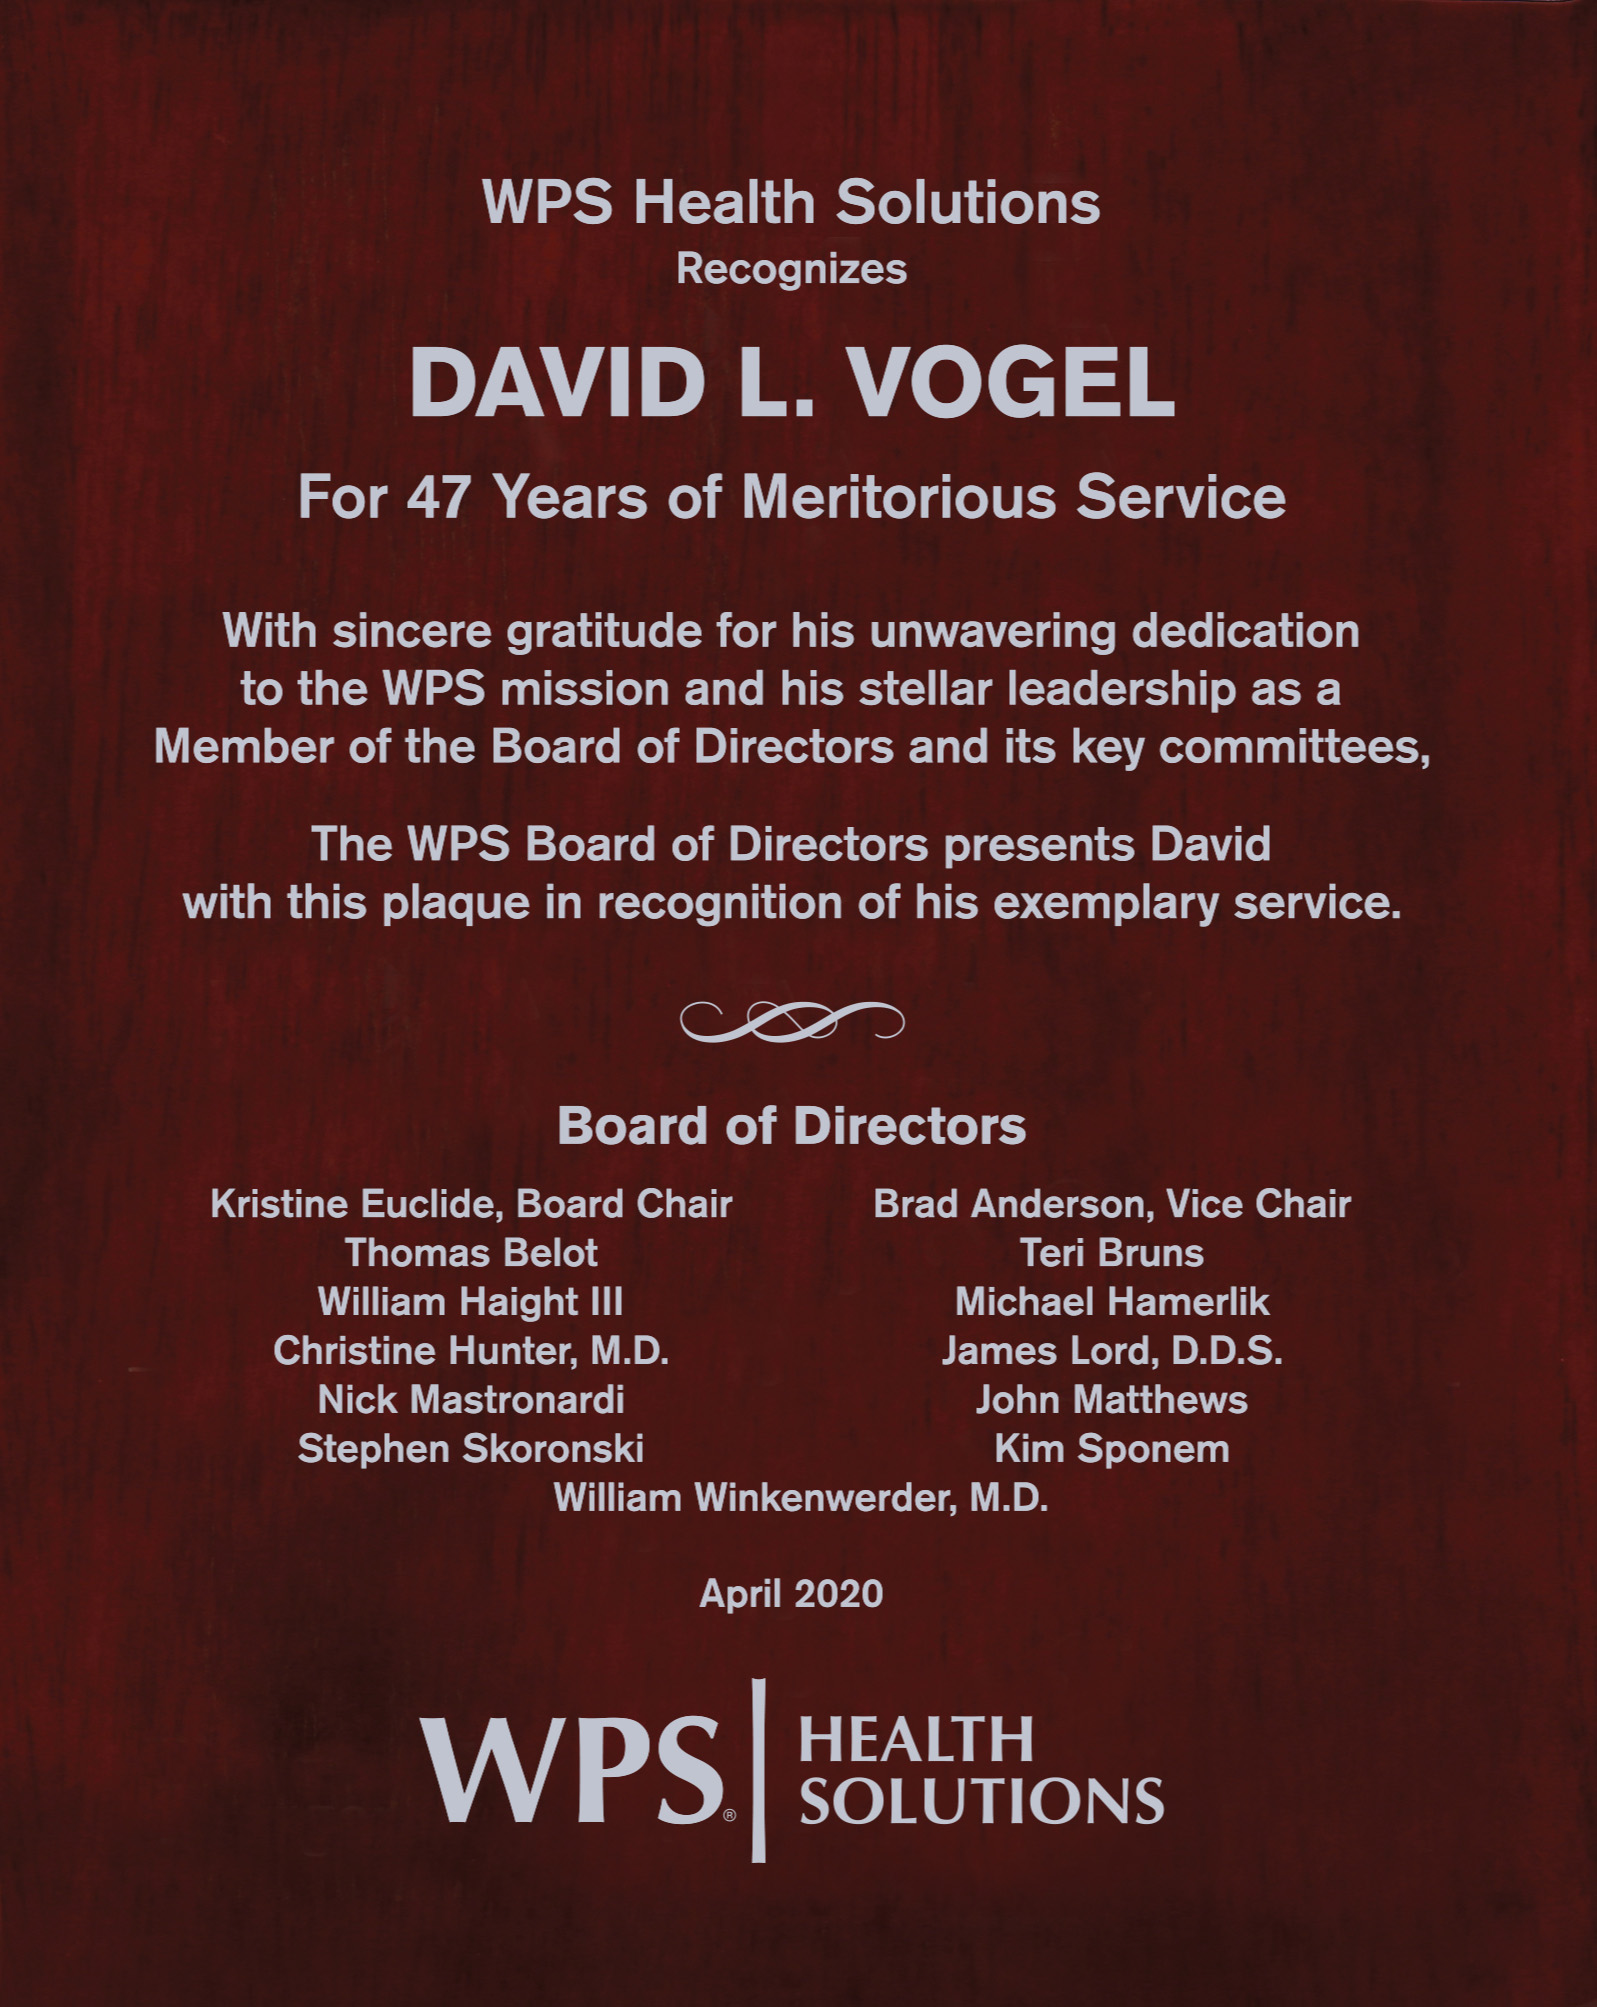 David Vogel plaque of recognition